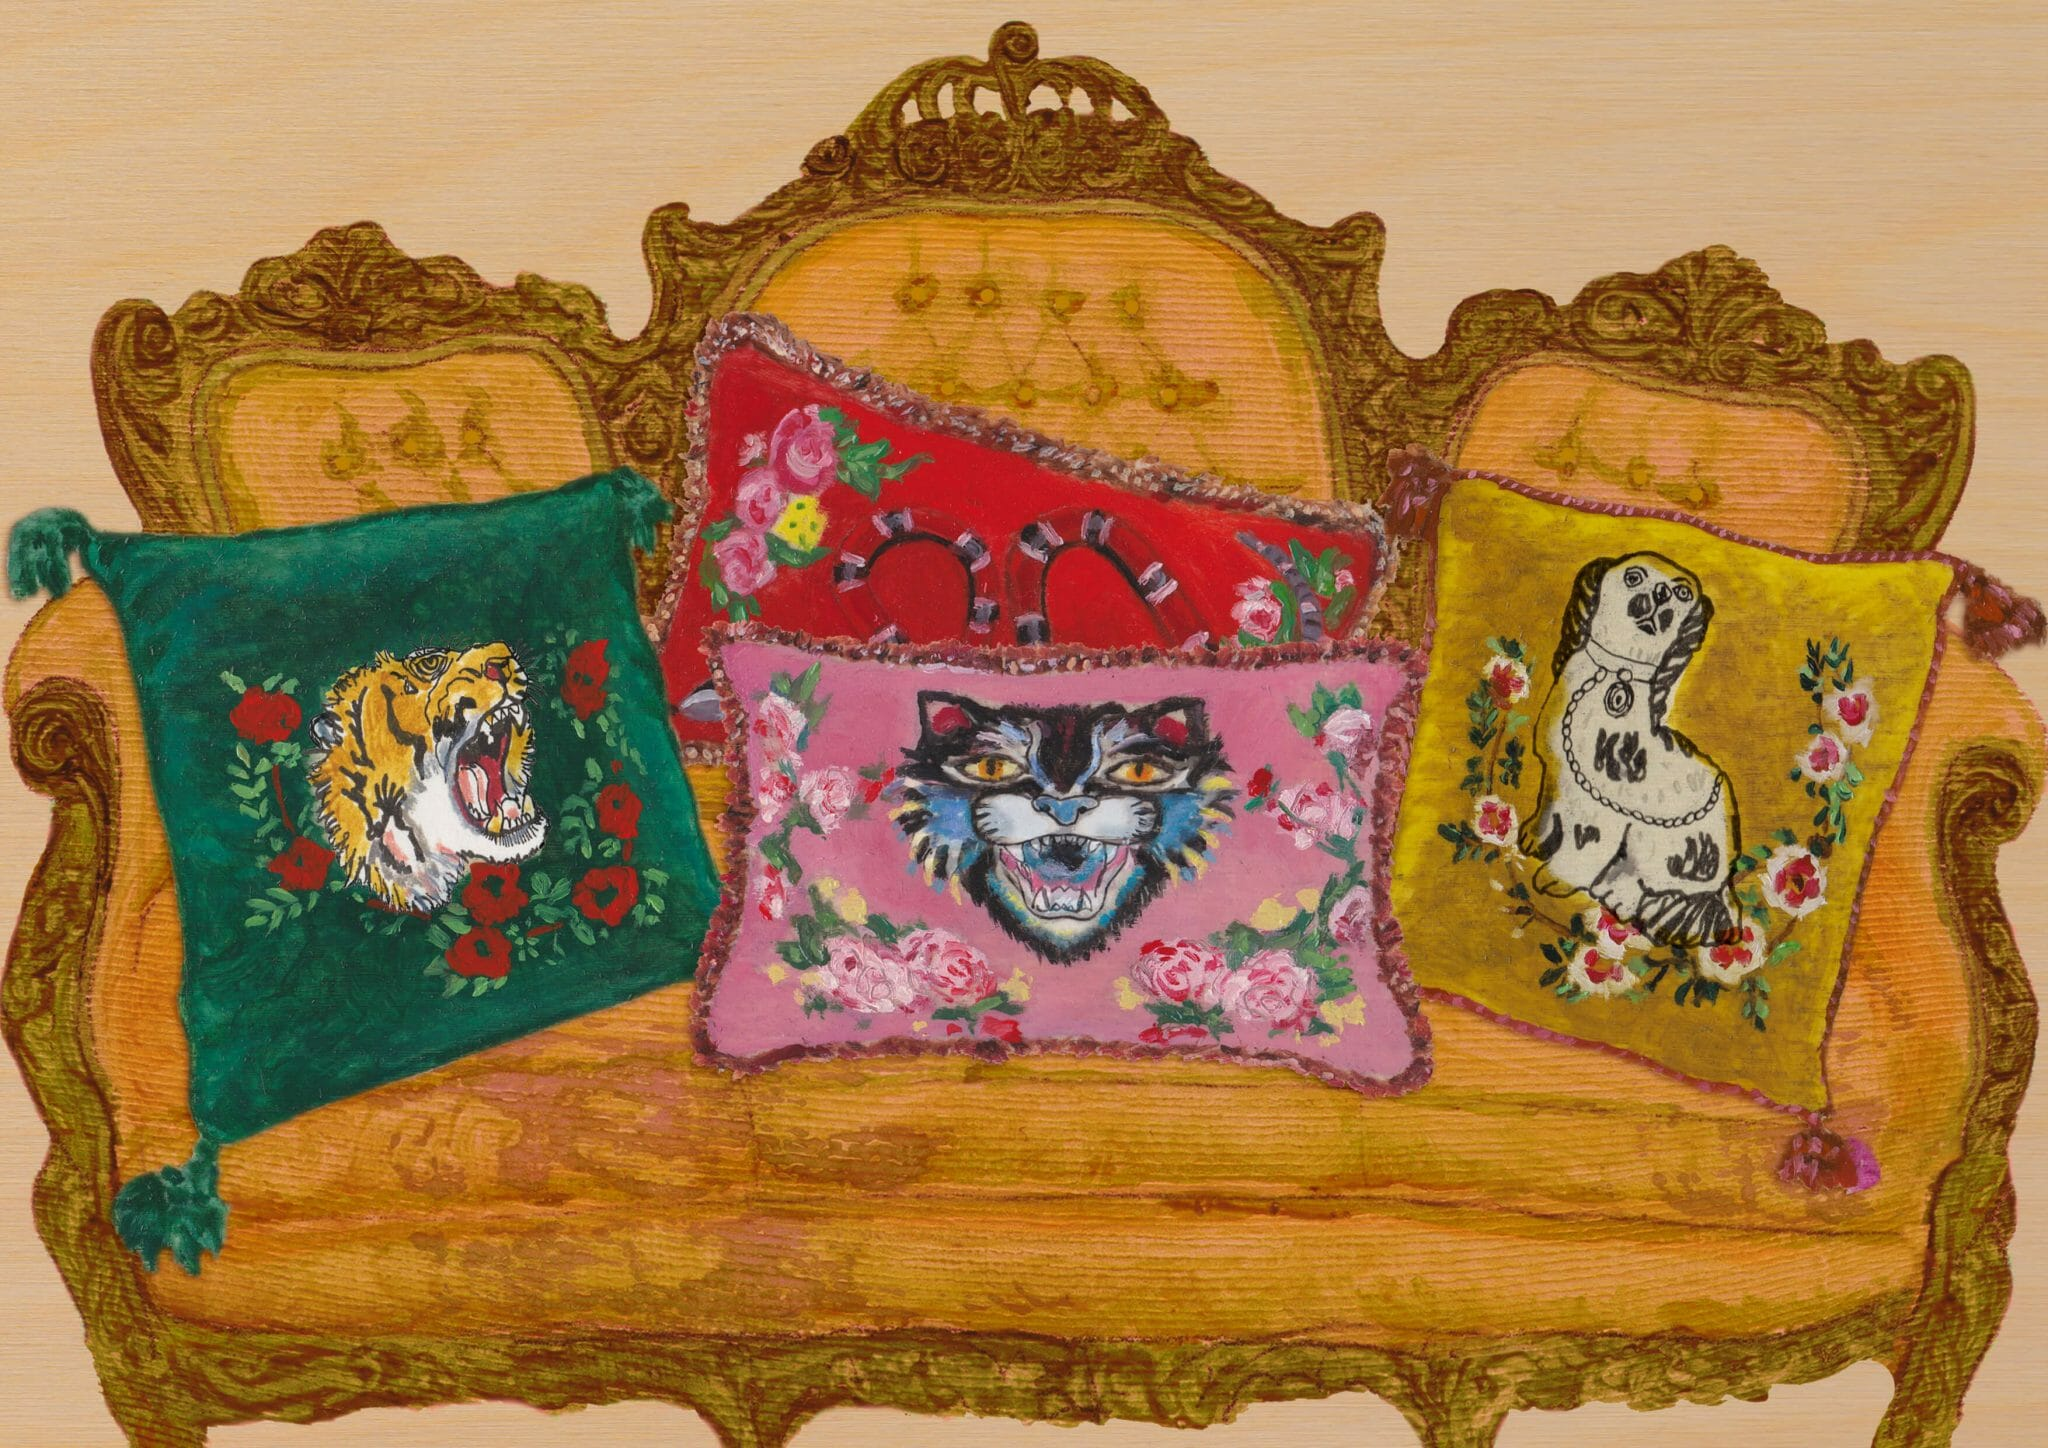 Velvet cushions from the Gucci Décor collection feature motifs including the Angry Cat, tiger head and Kingsnake. The embroidery and hand-application takes approximately 10 hours to complete.